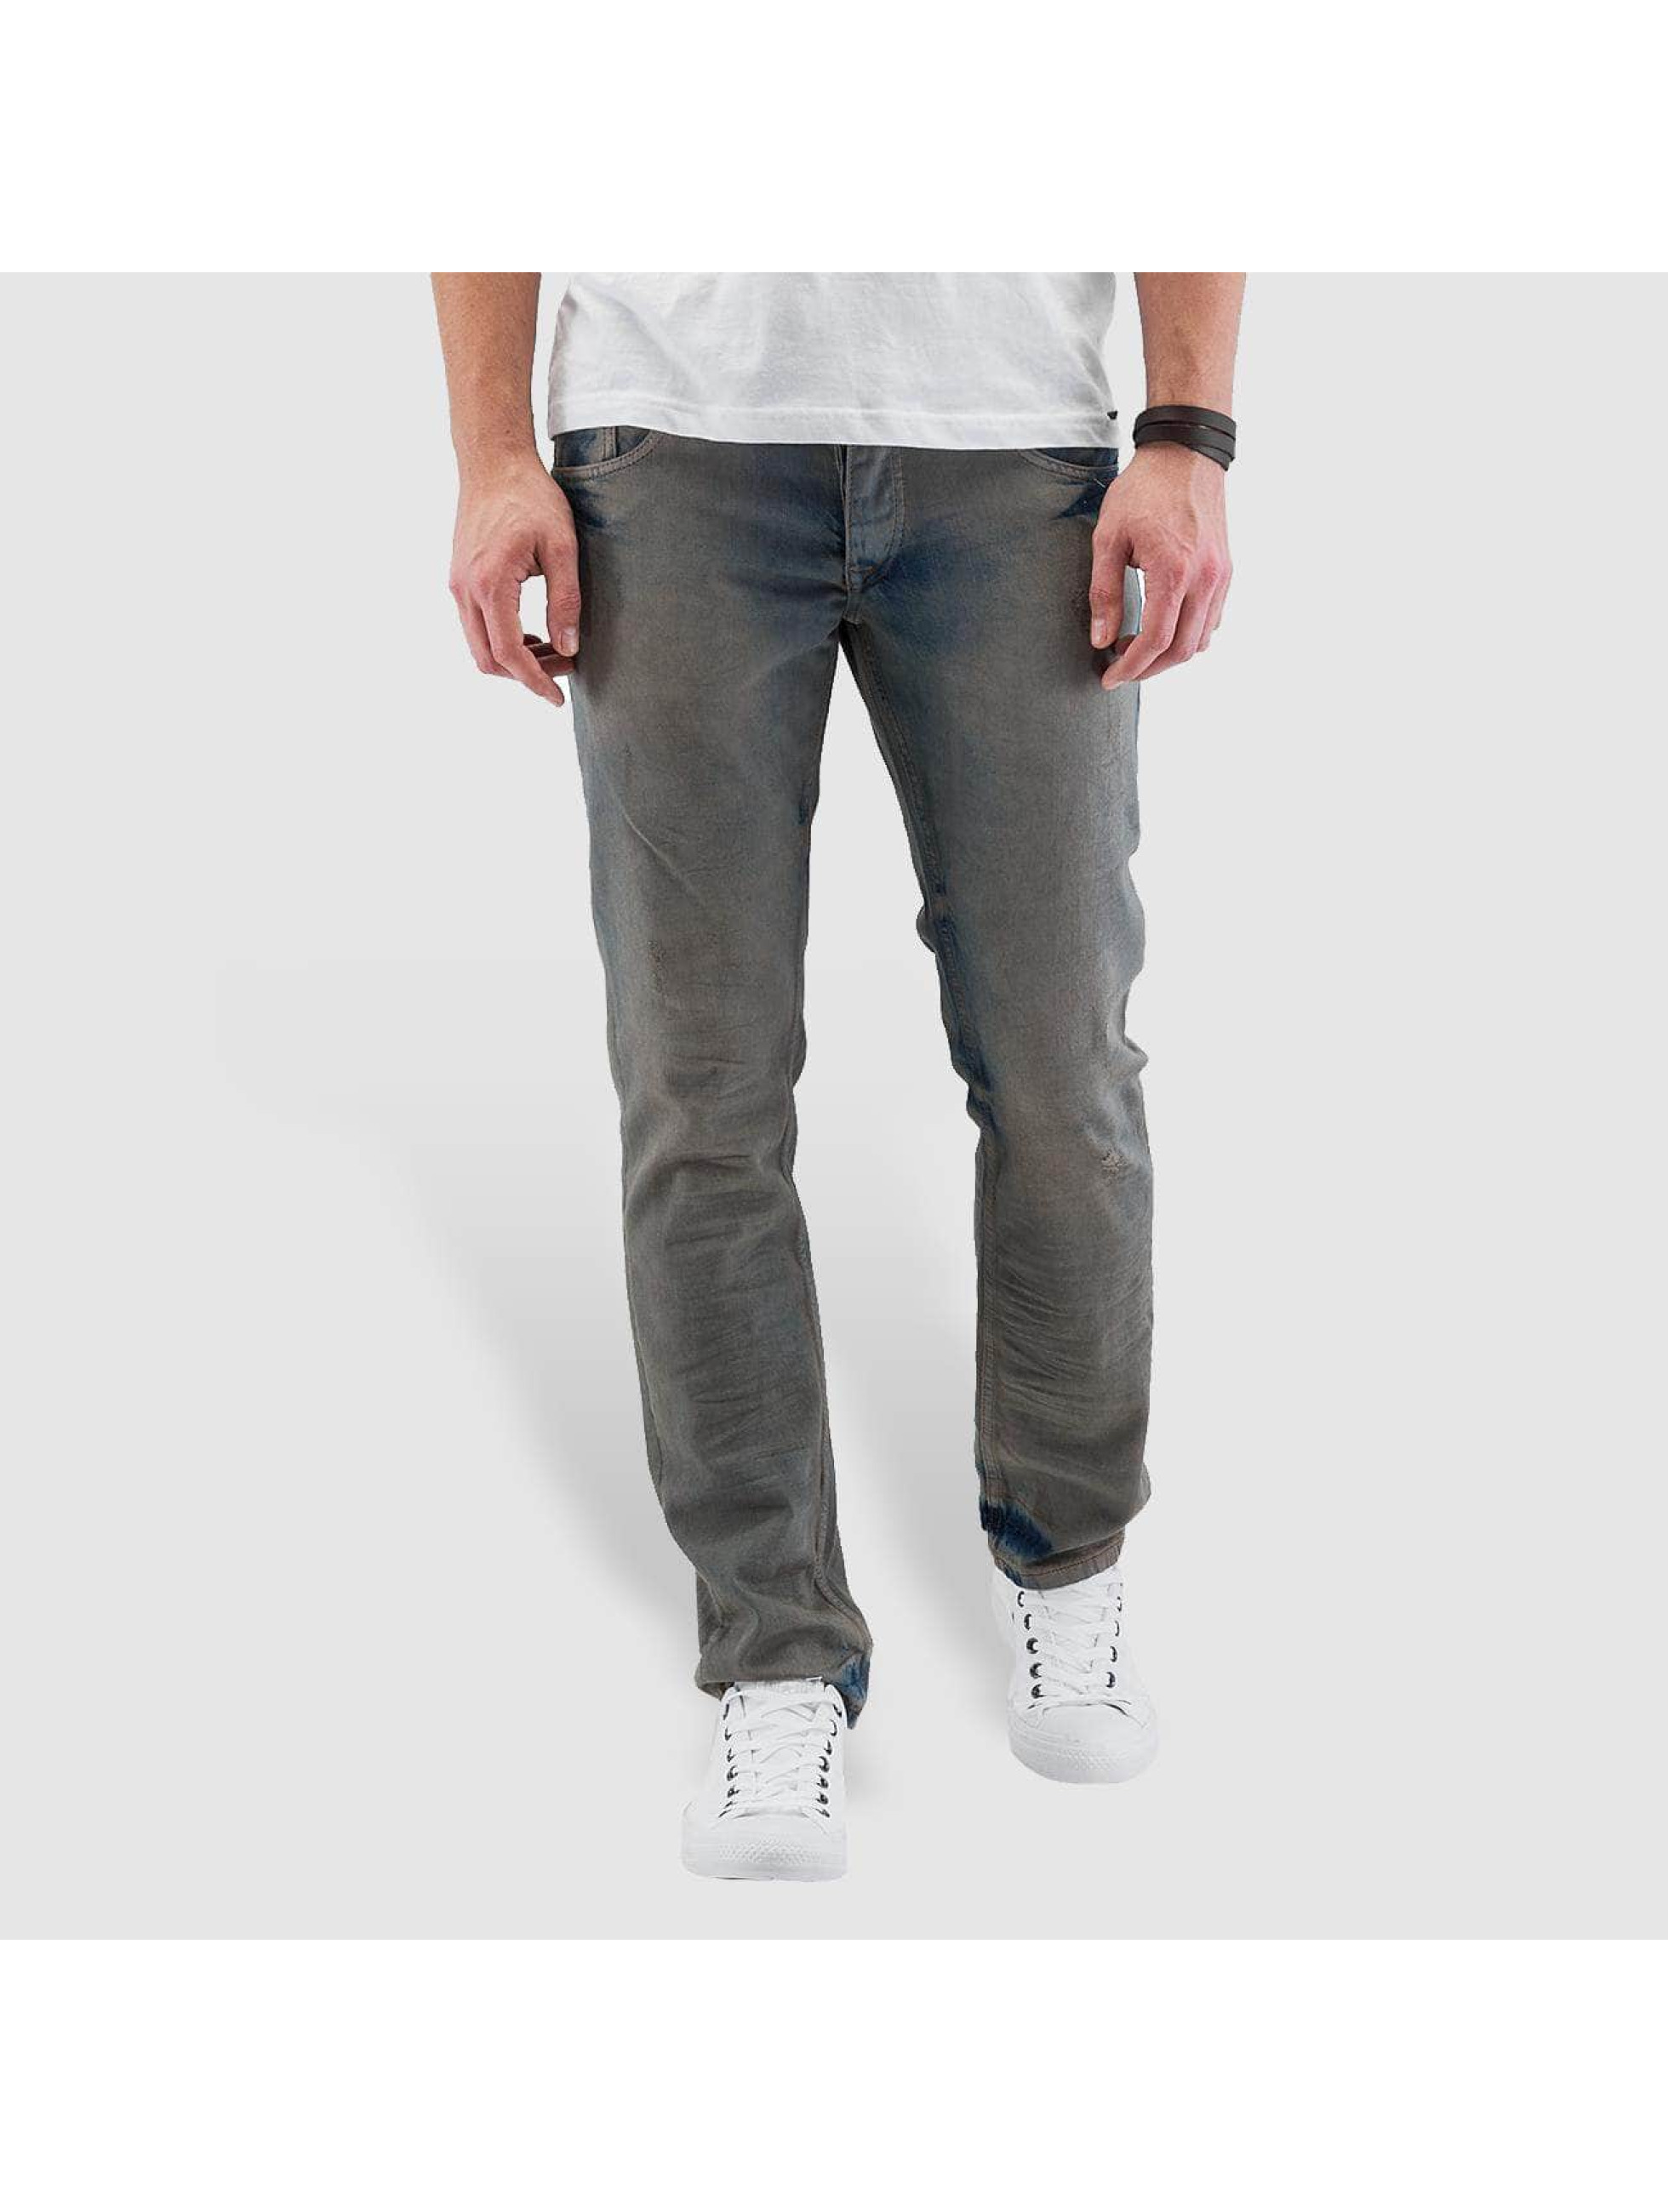 Cazzy Clang Straight Fit Jeans Washed blau